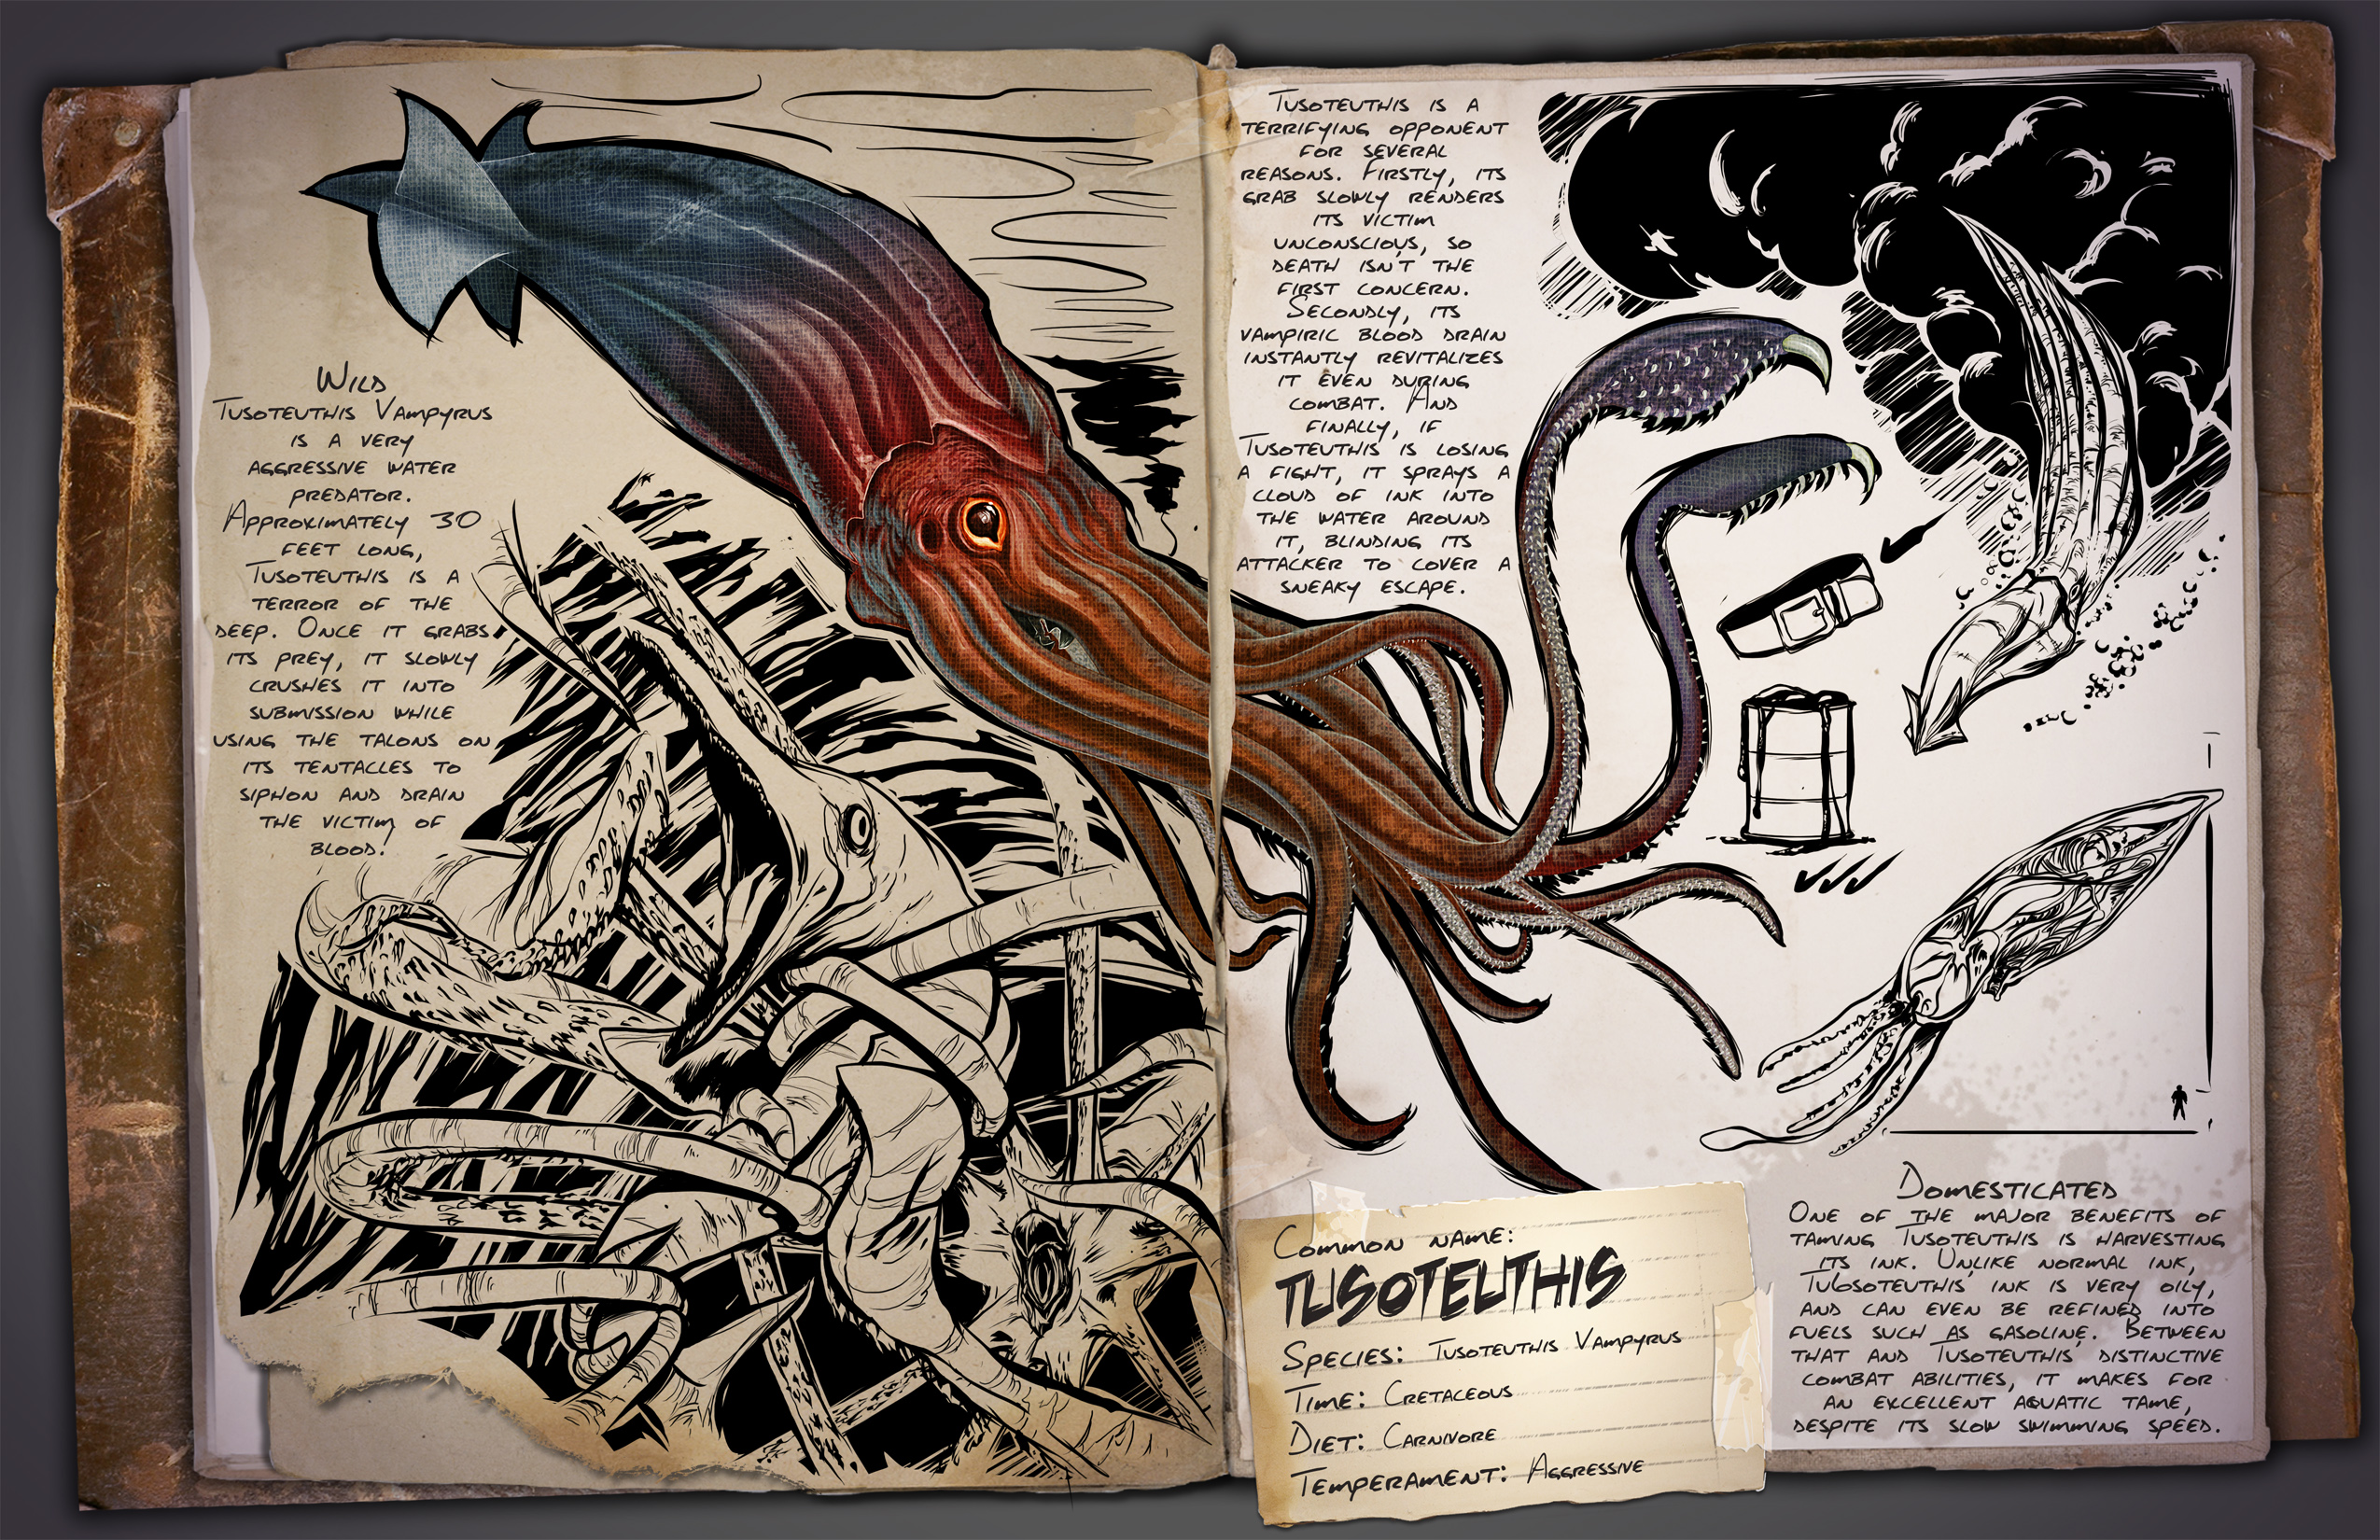 Ark Survival Evolved 08 10 15 Introducing The Tusoteuthis Steam News For a list of all creatures, see creatures. steam